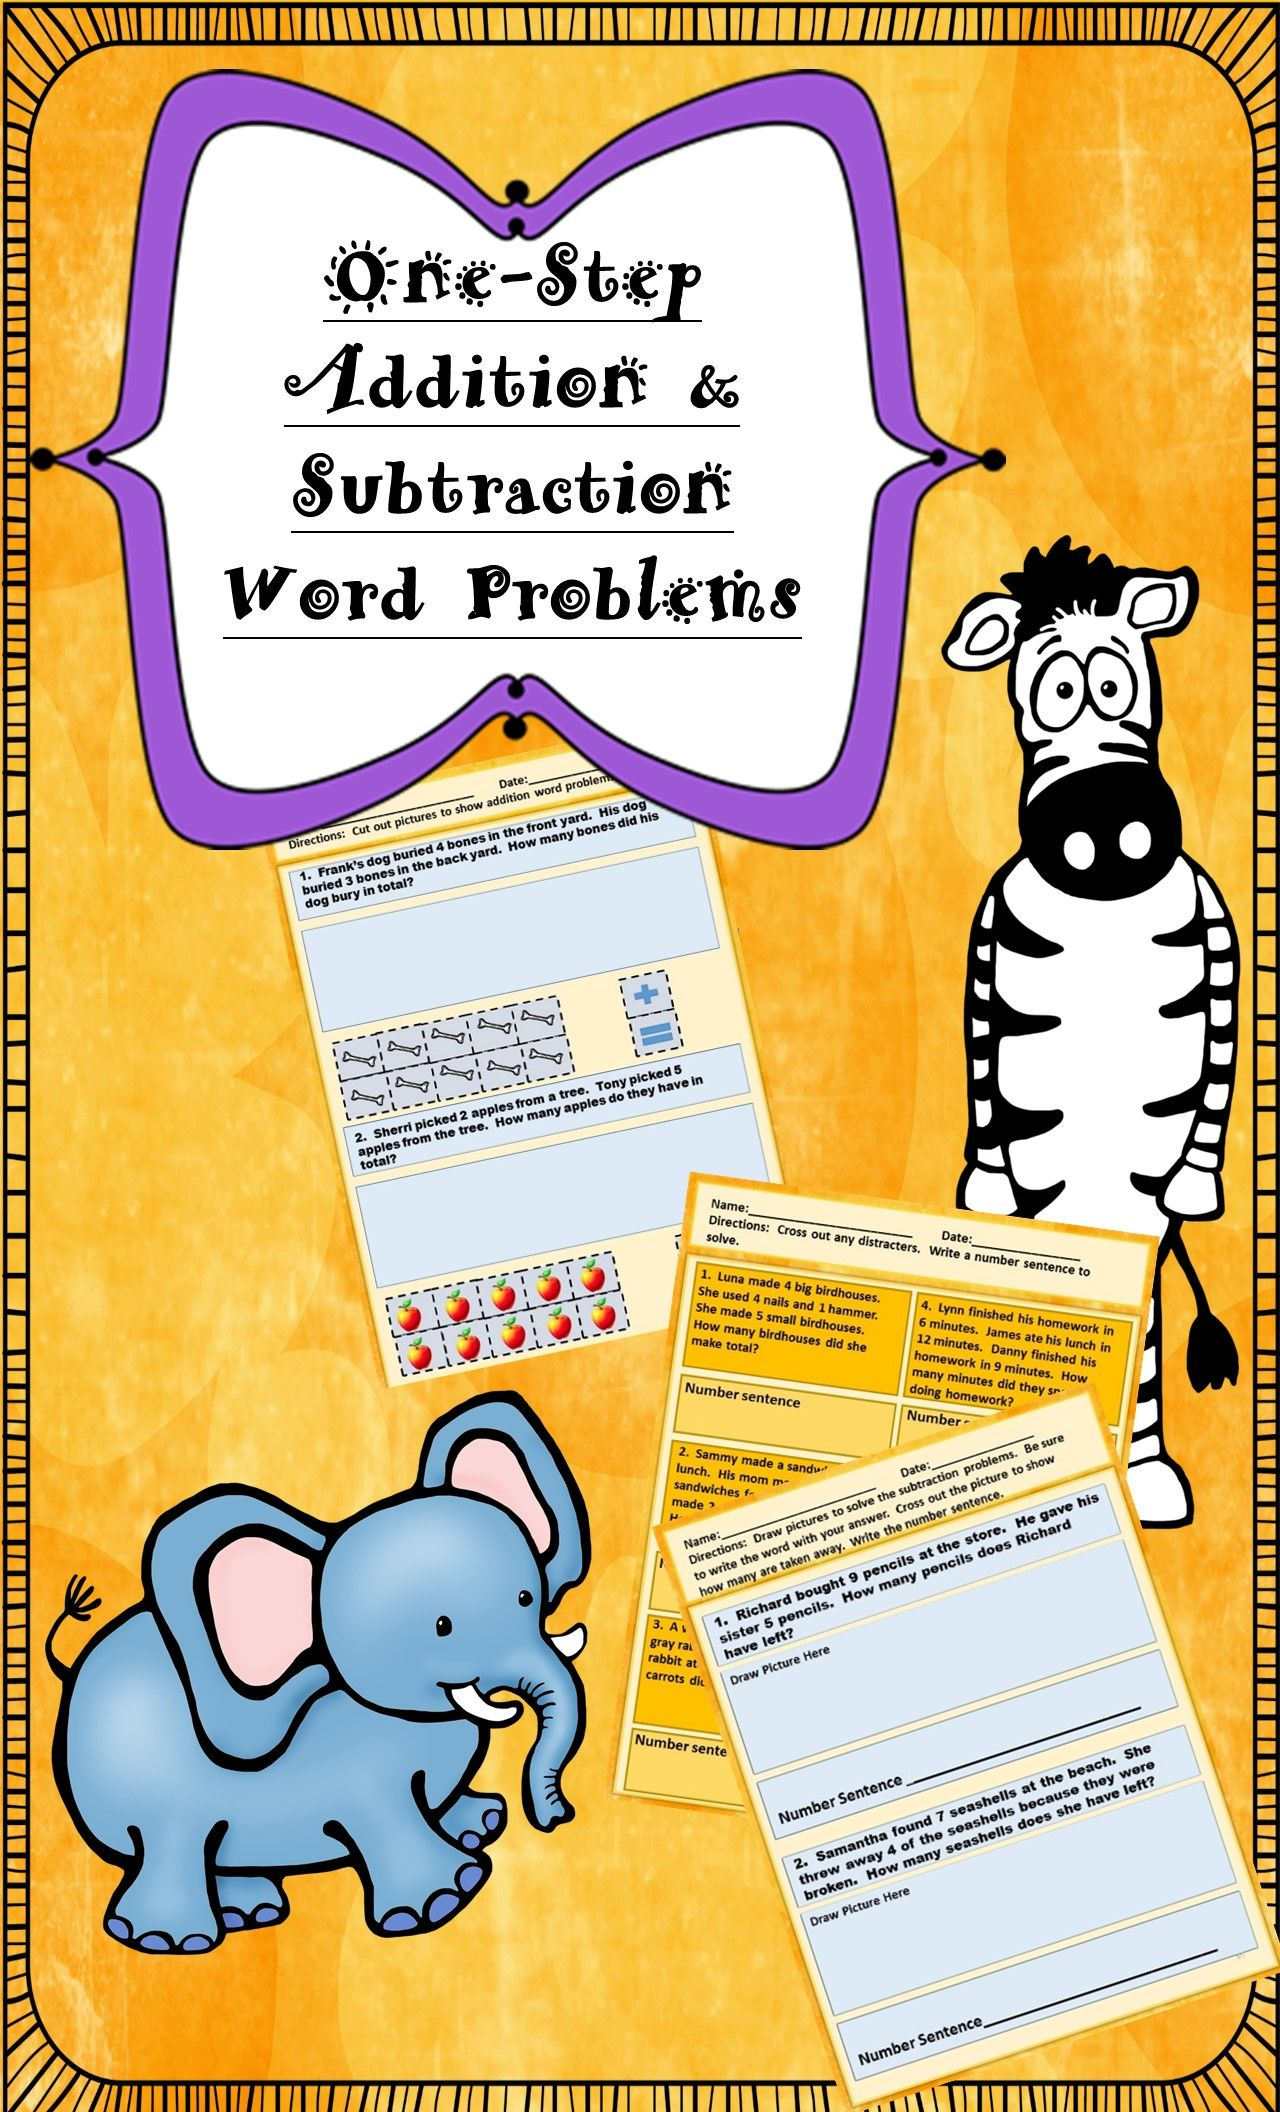 250 One-Step Addition Word Problems for Grades K-1st